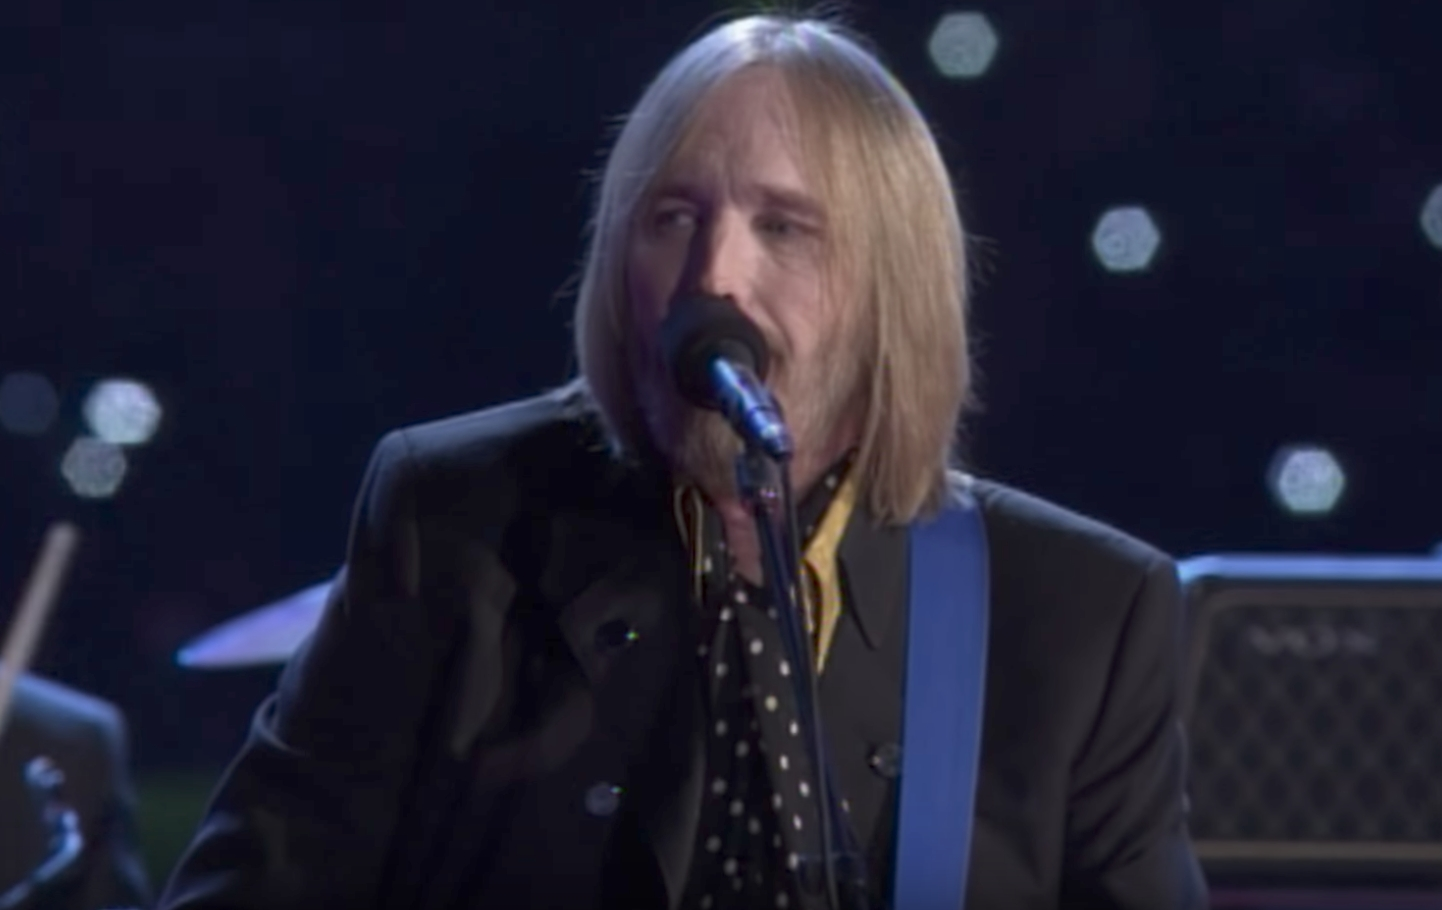 Nfl Releases Tom Petty And The Heartbreakers' Raucous 2008 throughout Tom Petty Super Bowl